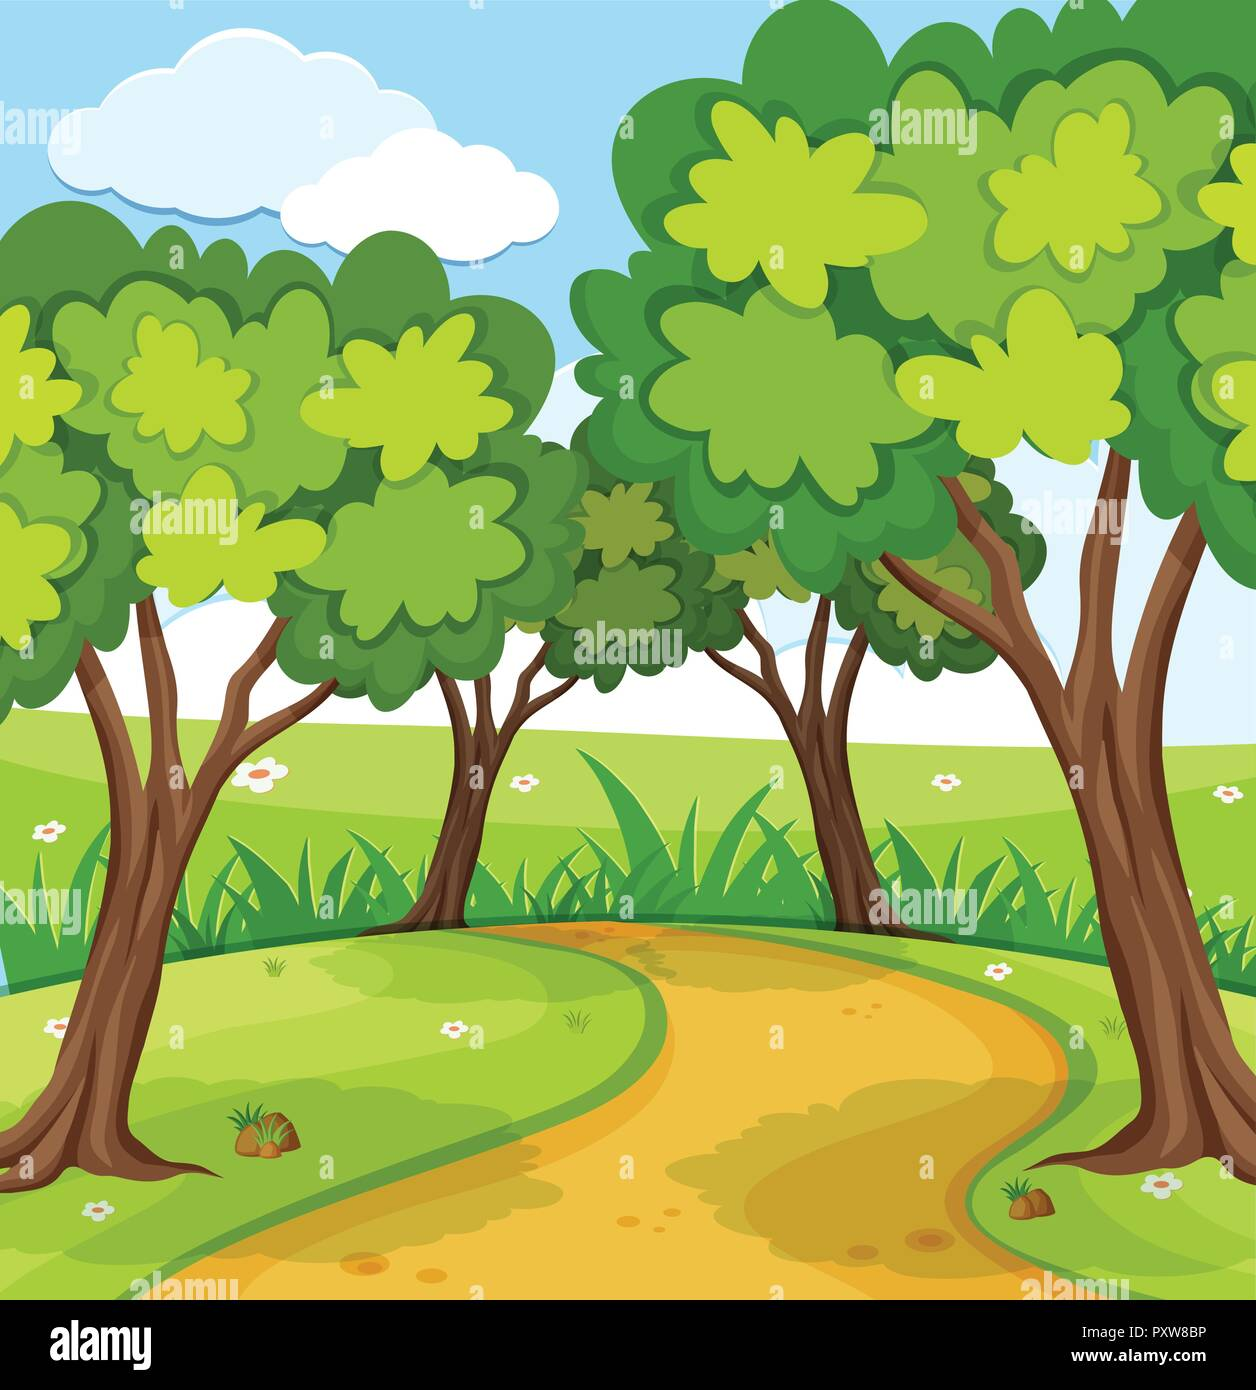 Background Scene With Trees In The Park Illustration Stock Vector Image Art Alamy